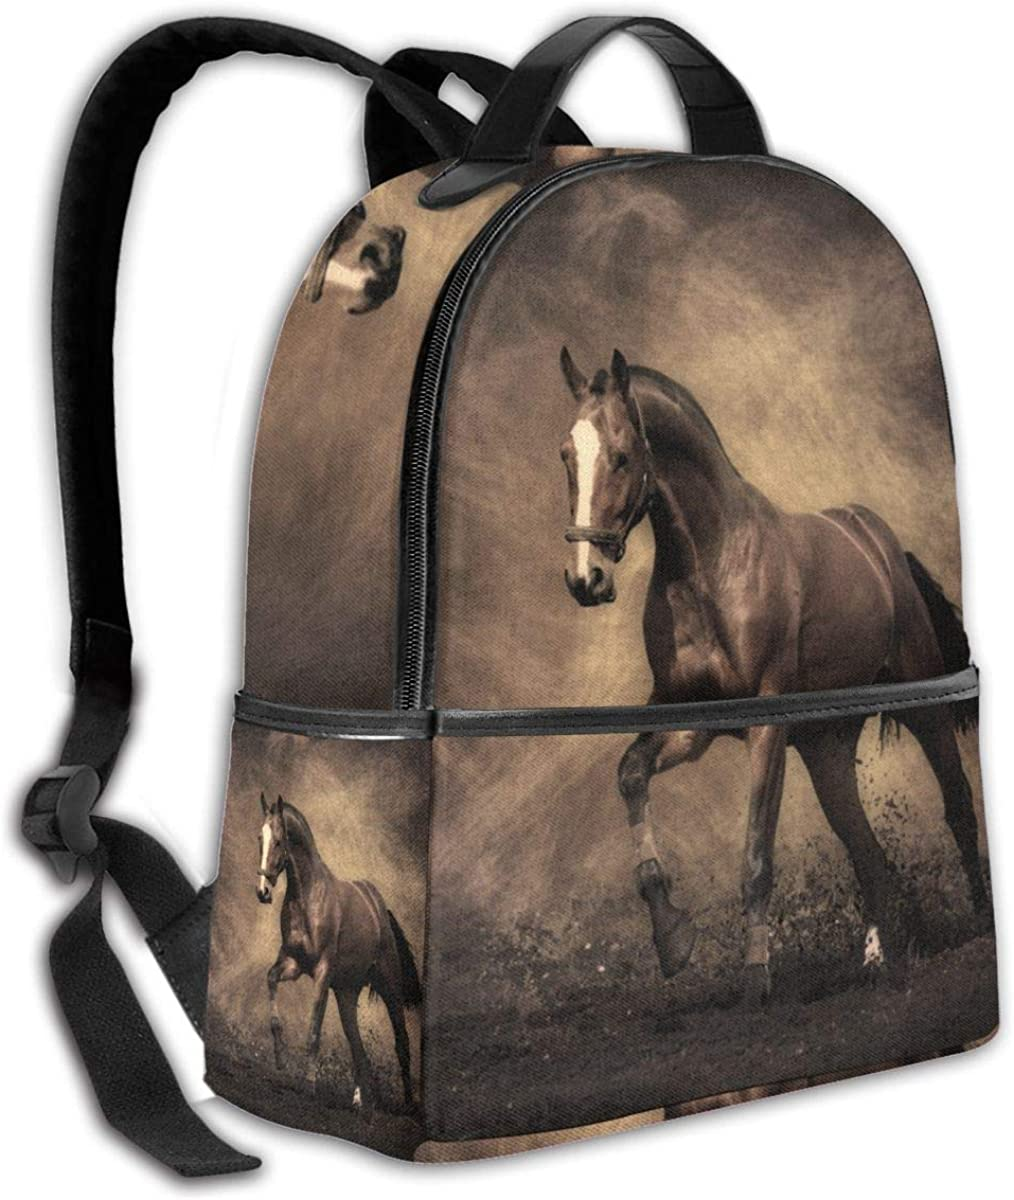 Animal Black Wild Horse Fashion Durable Unisex Backpack Water Resistant Anti Theft Notebook Computer Bag Middle High School Student Bookbag Travel Daypack